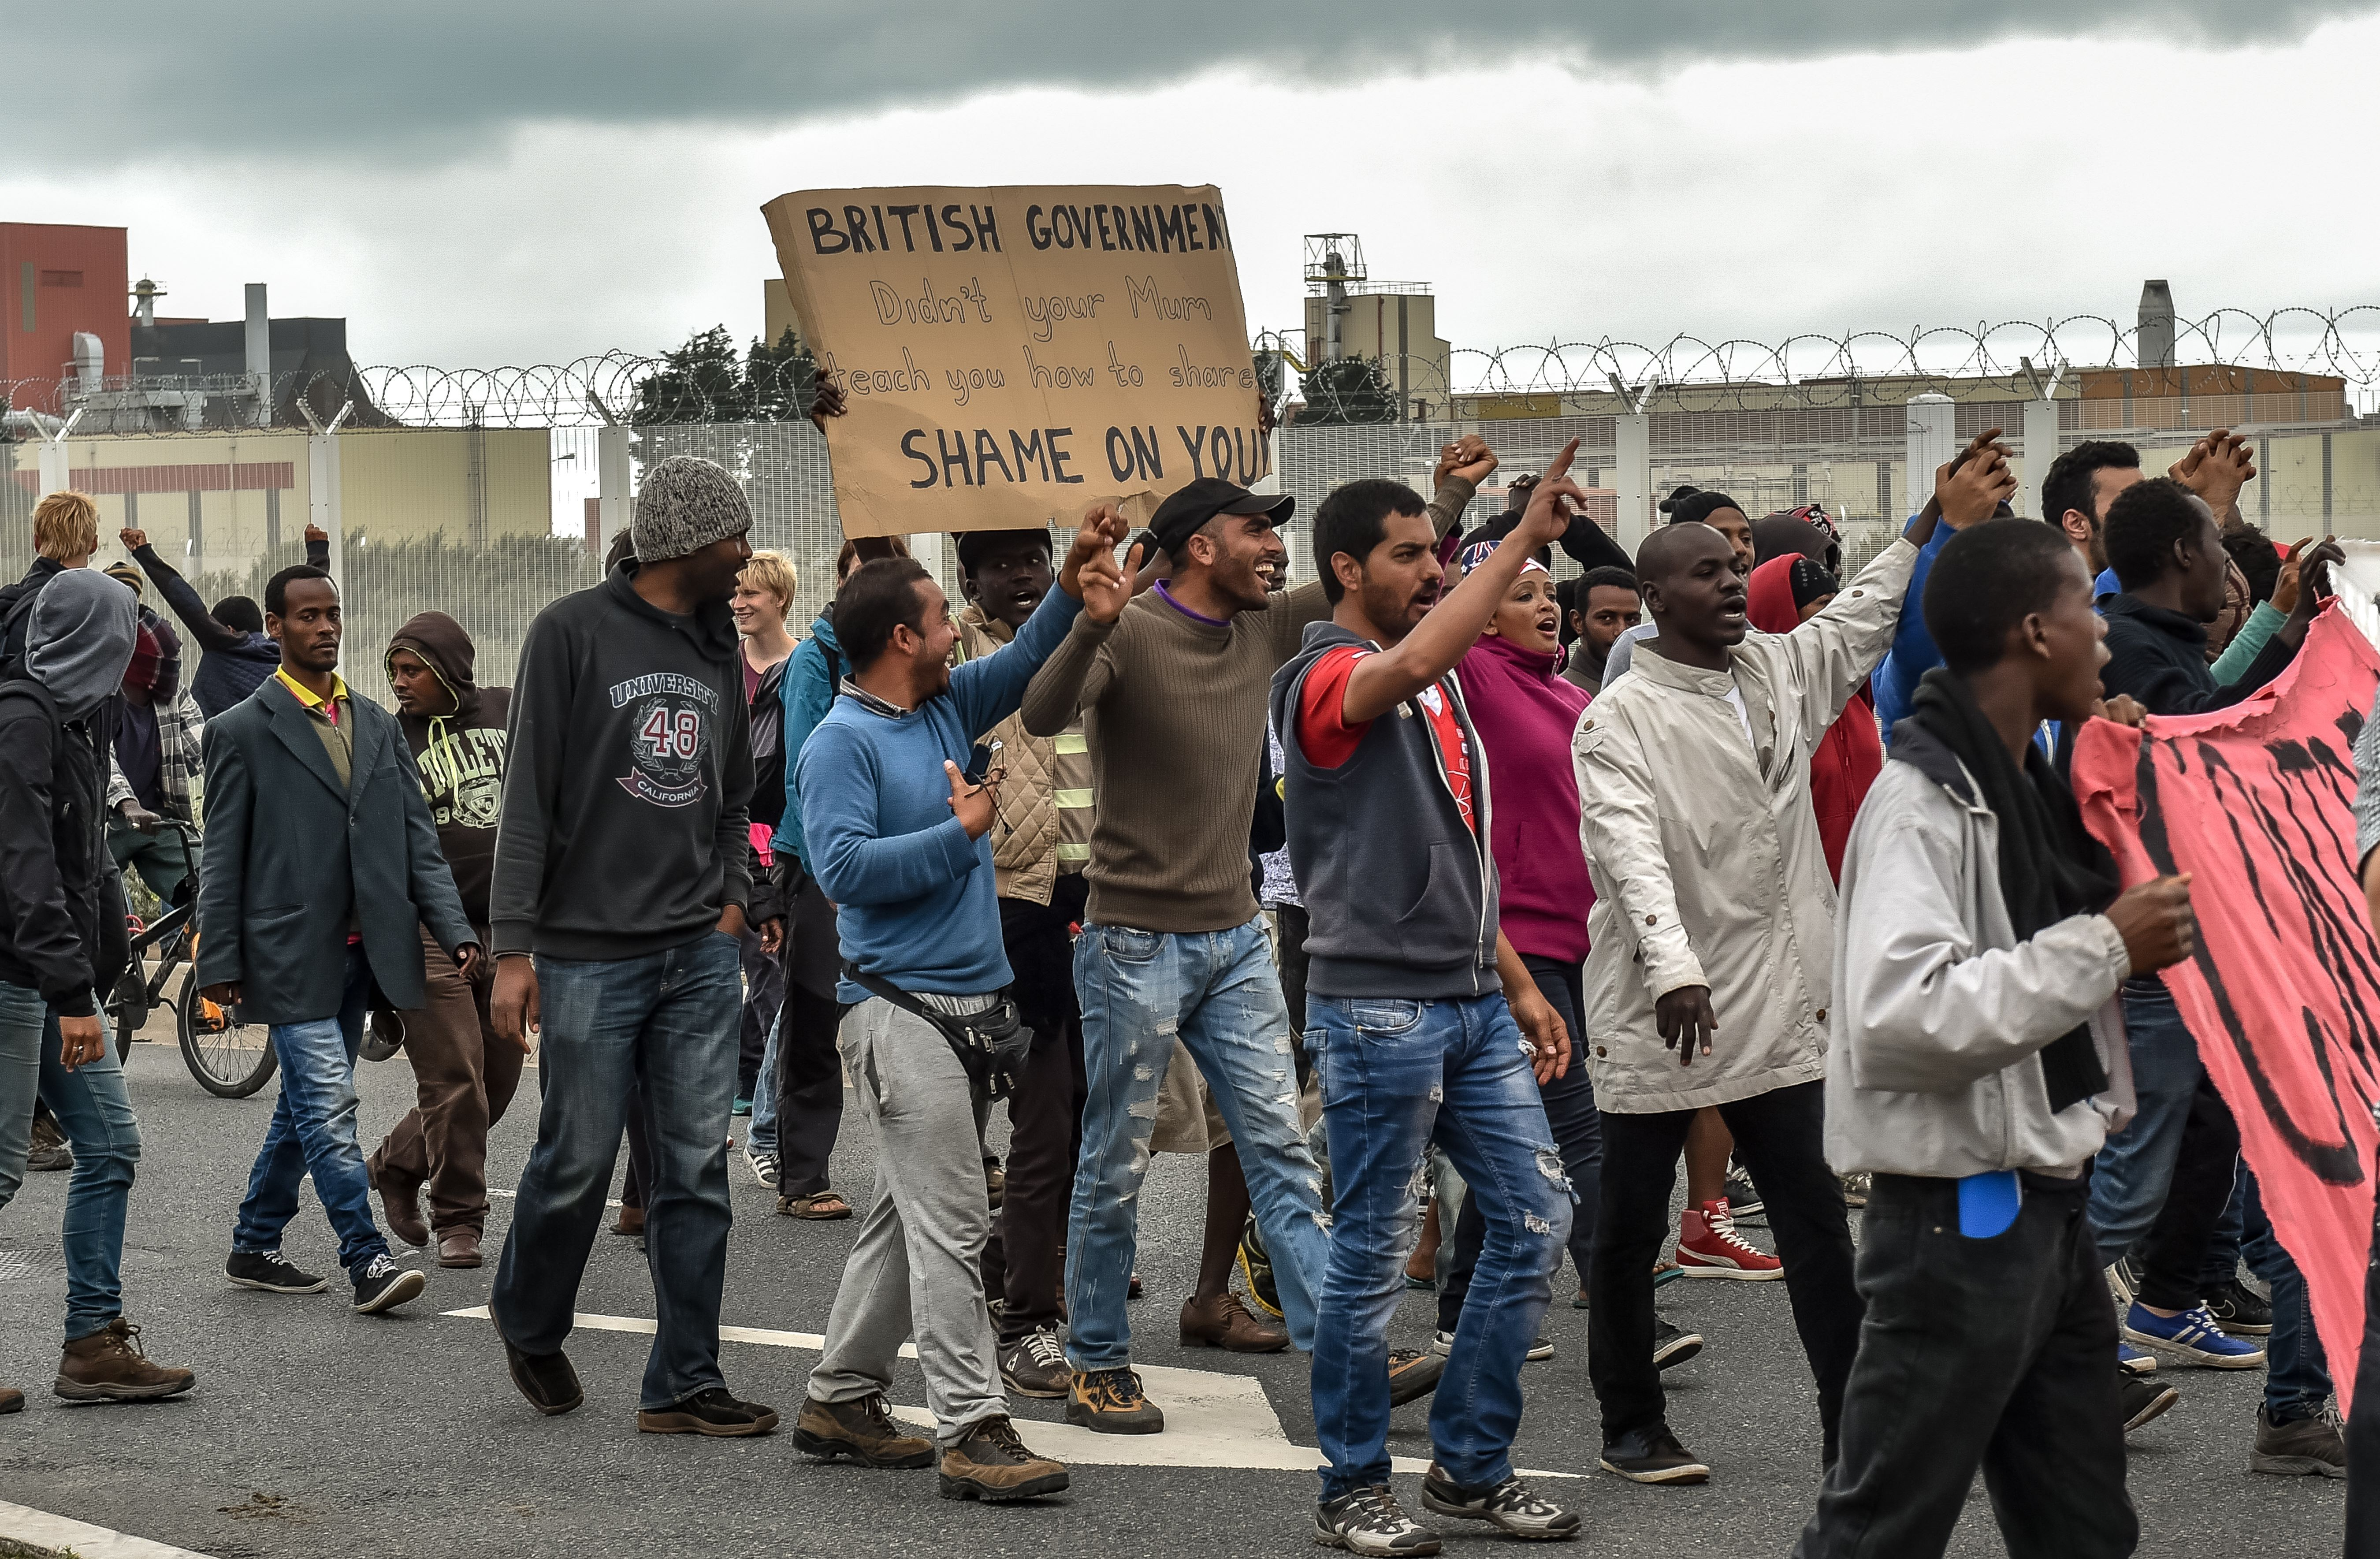 Illegal migrants demonstrate against British government, on Aug. 20, 2015 in Calais,